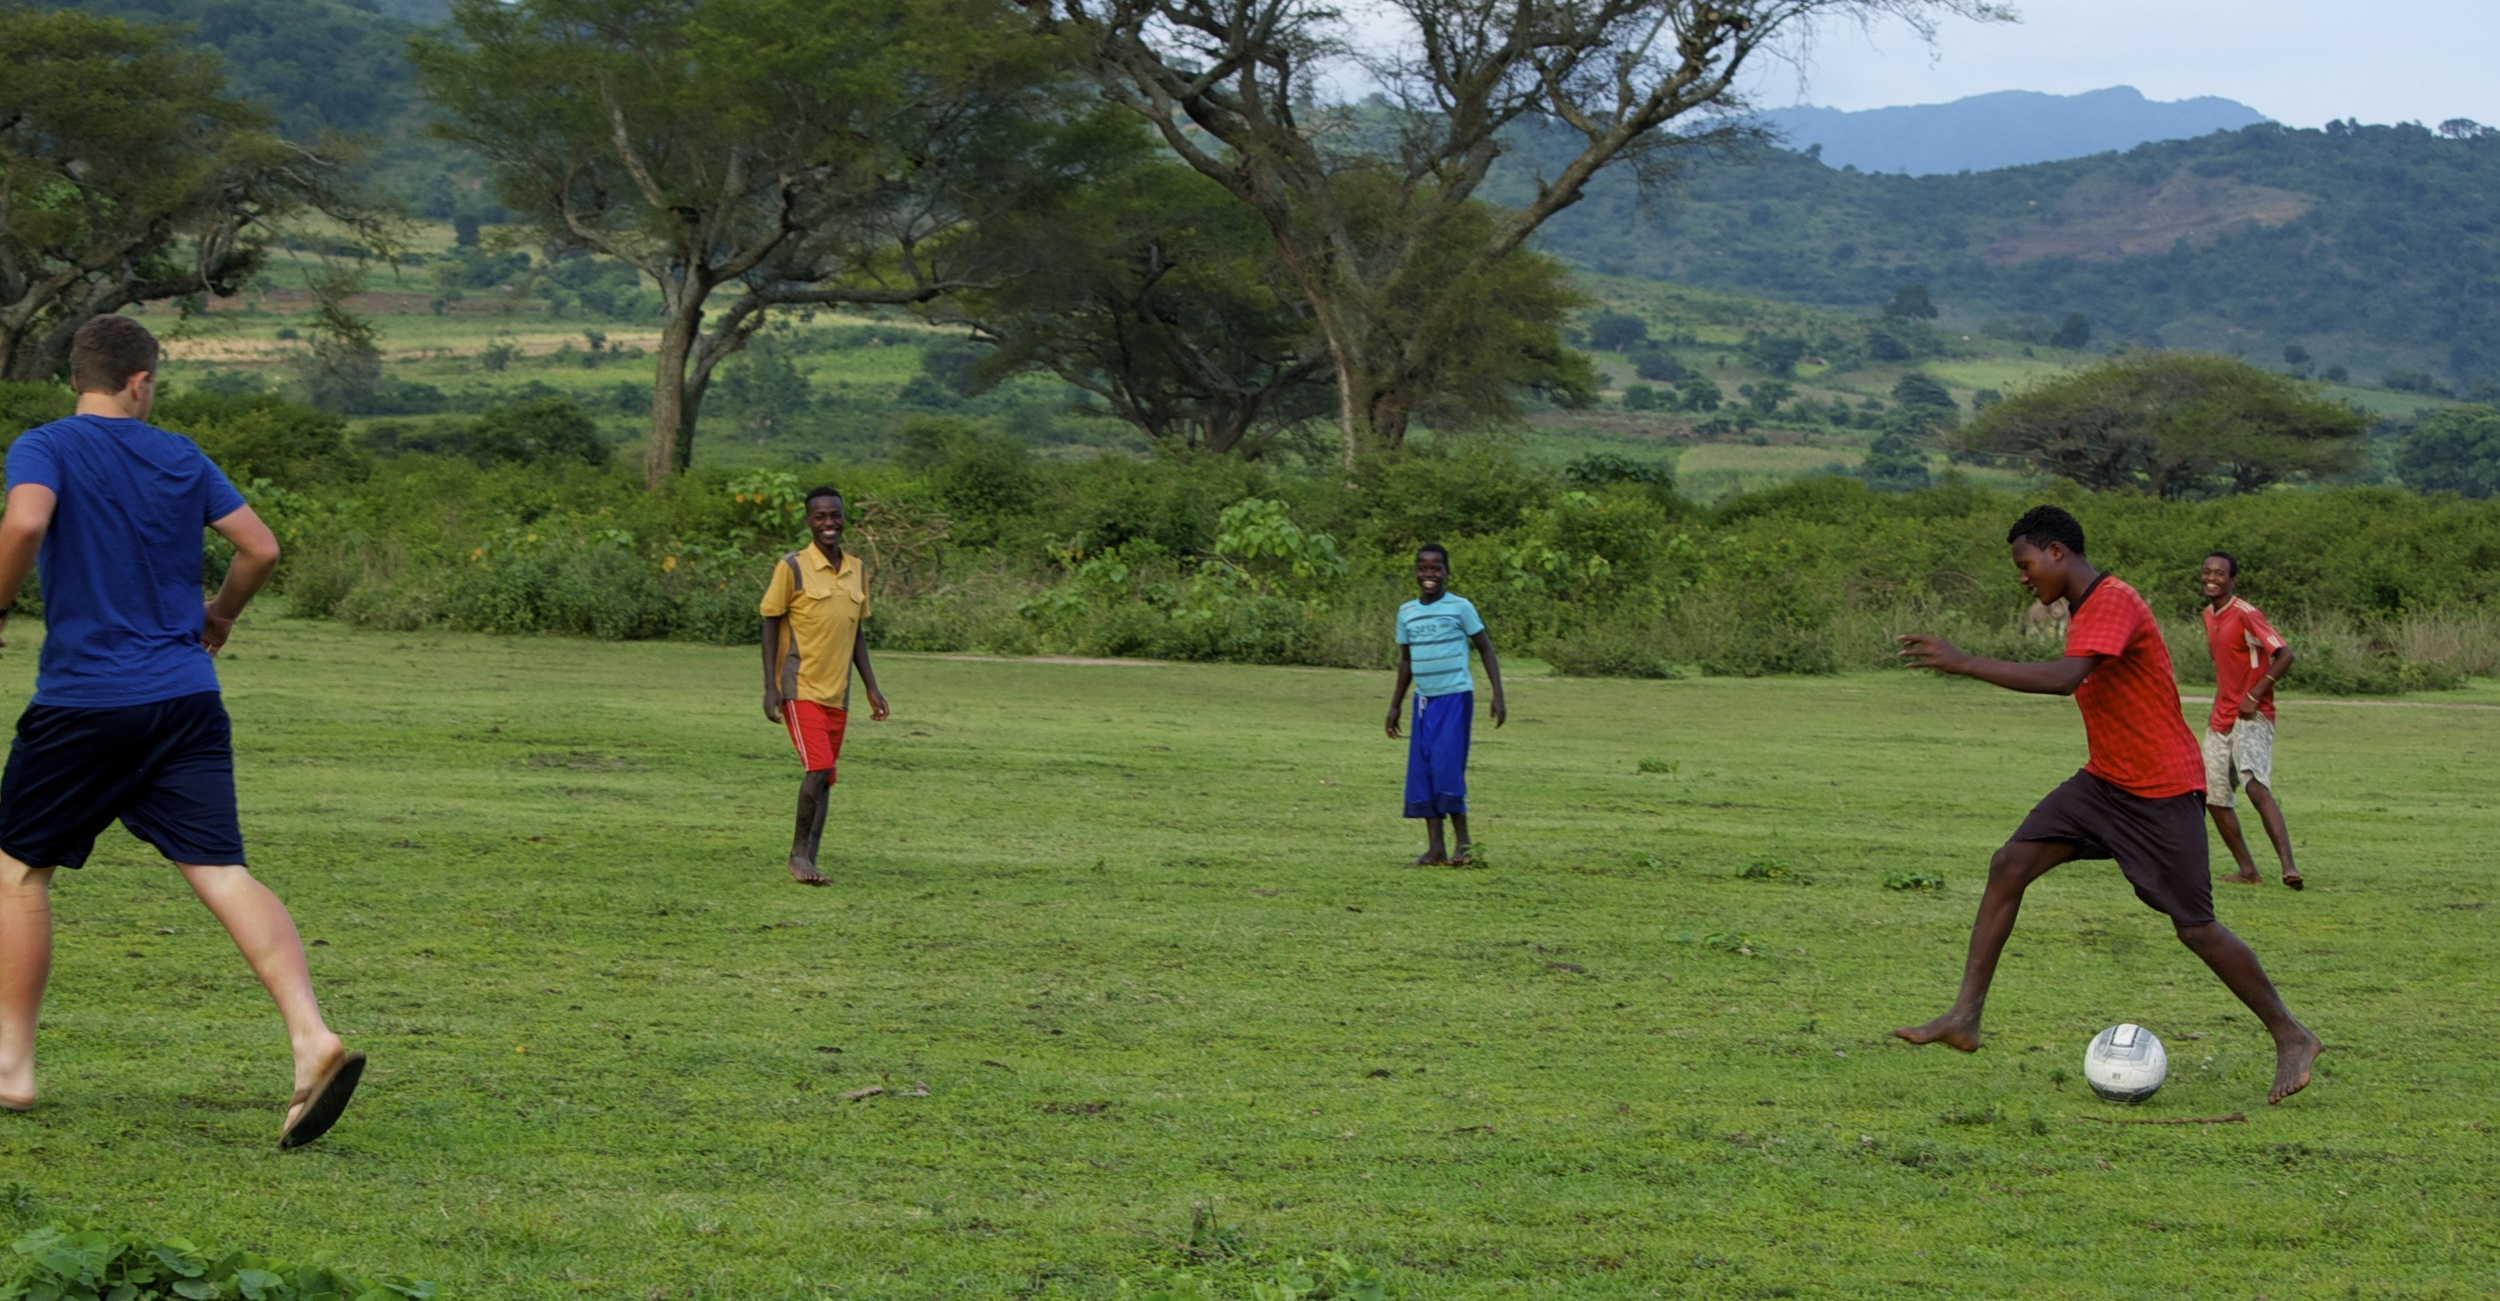 A stop on our way to the Omo Valley